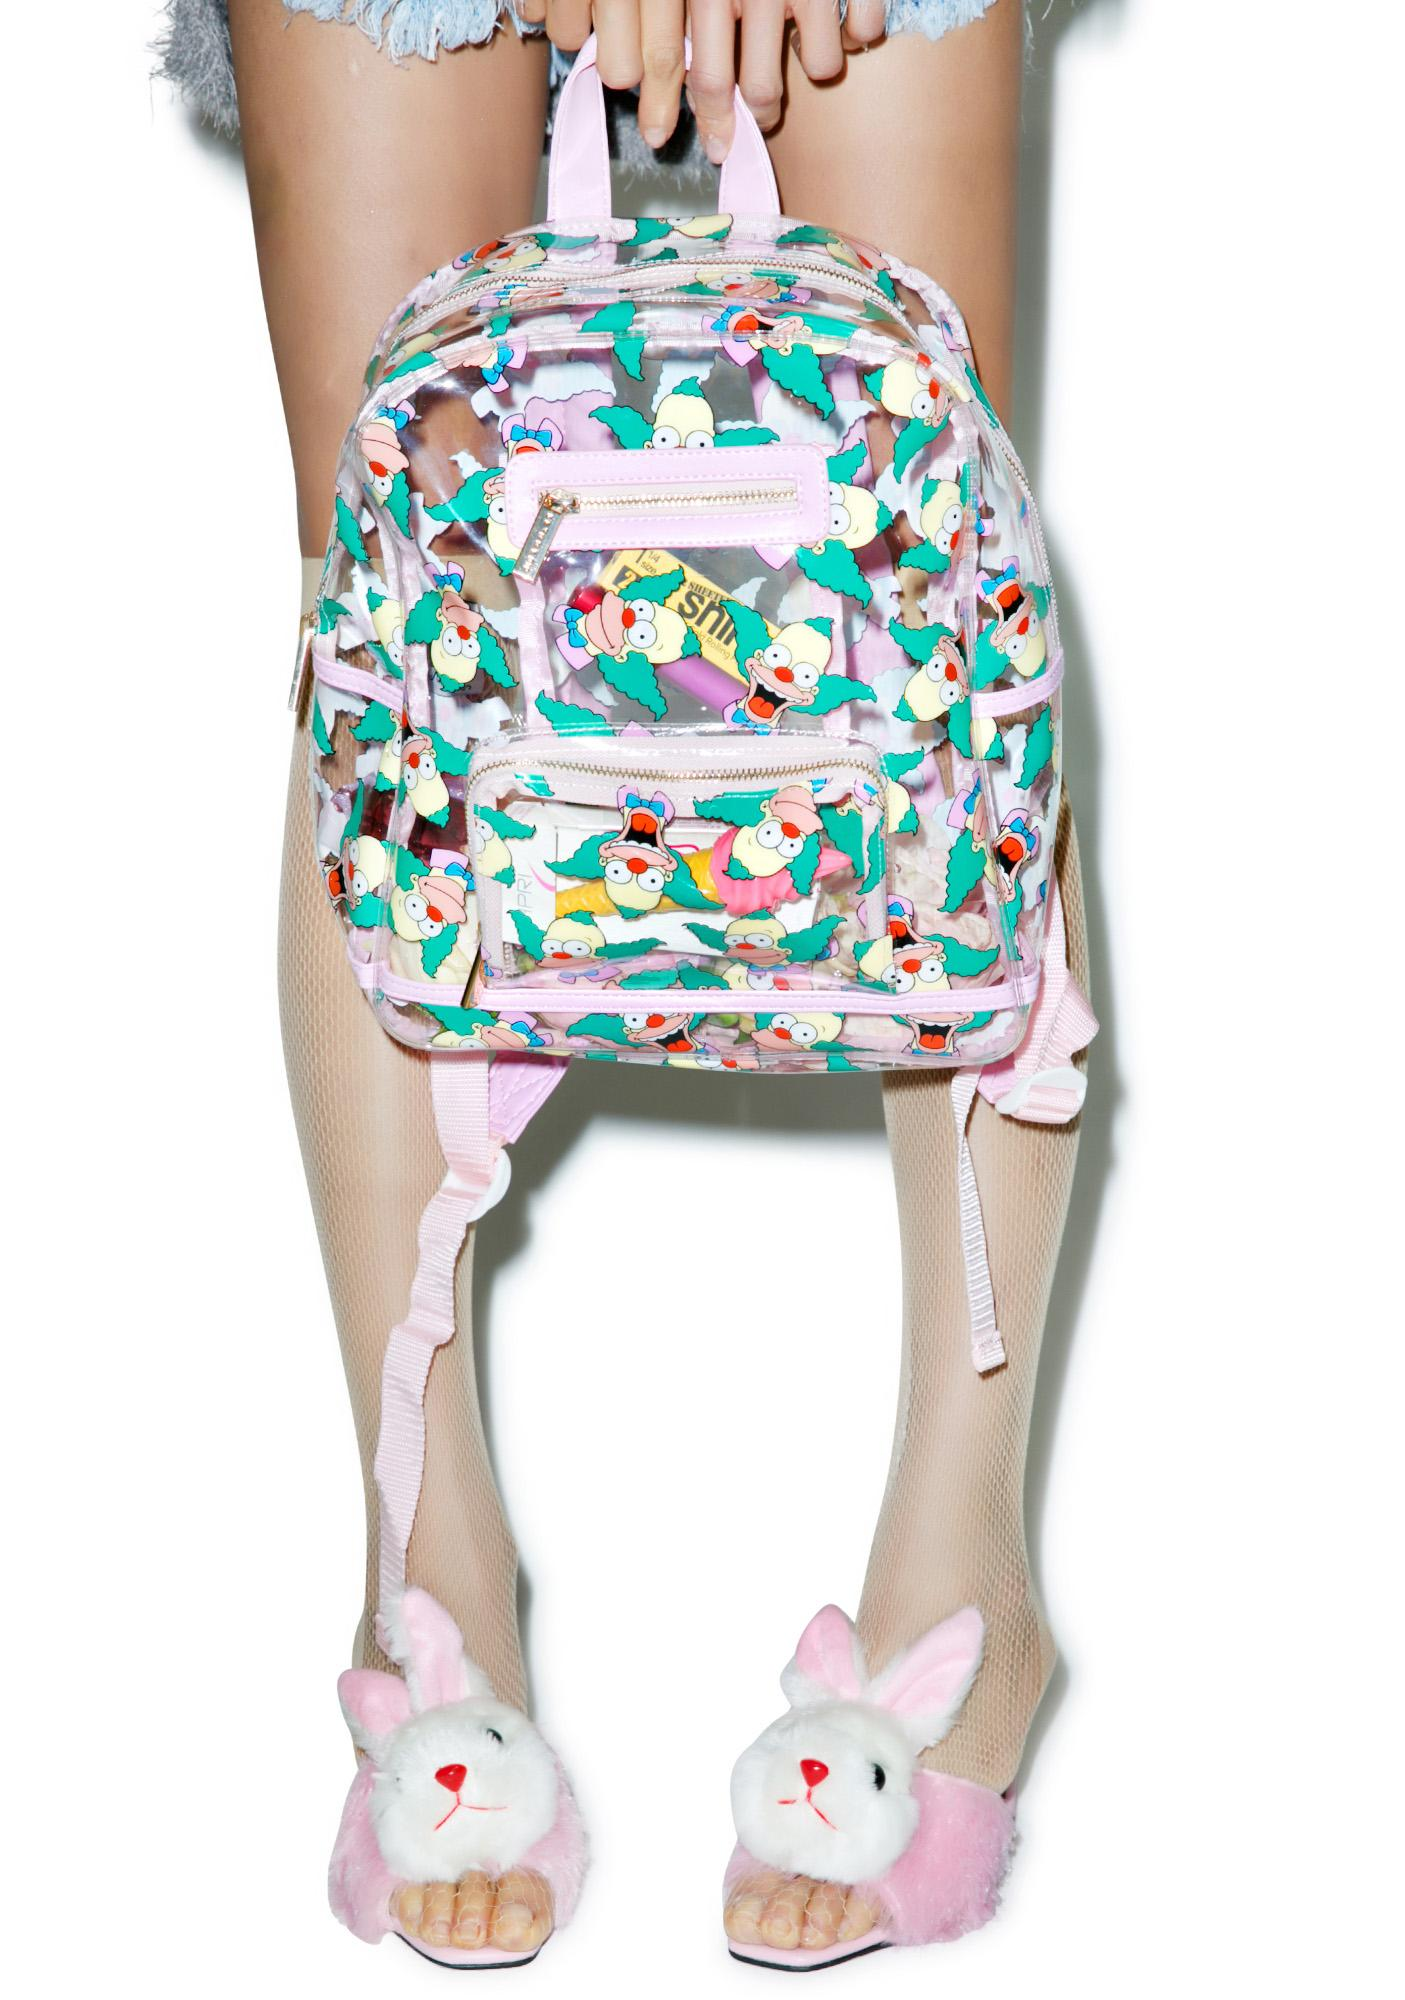 Skinnydip Krusty Backpack